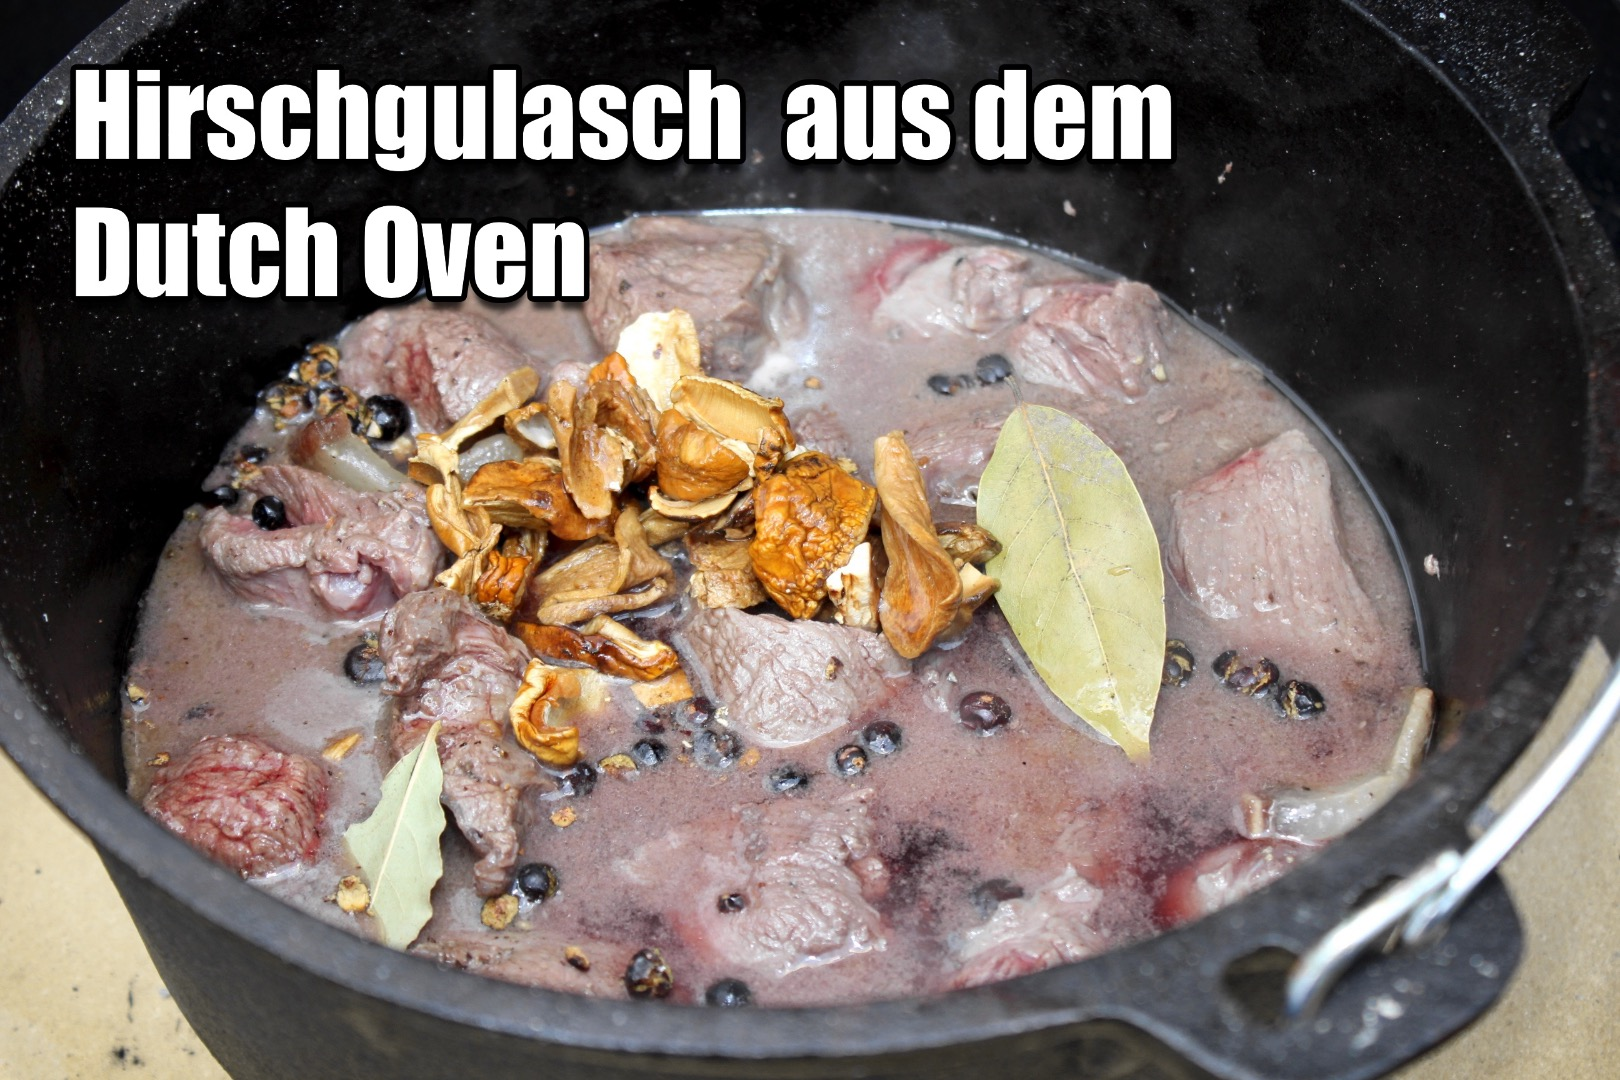 Hirschgulasch Dutch oven